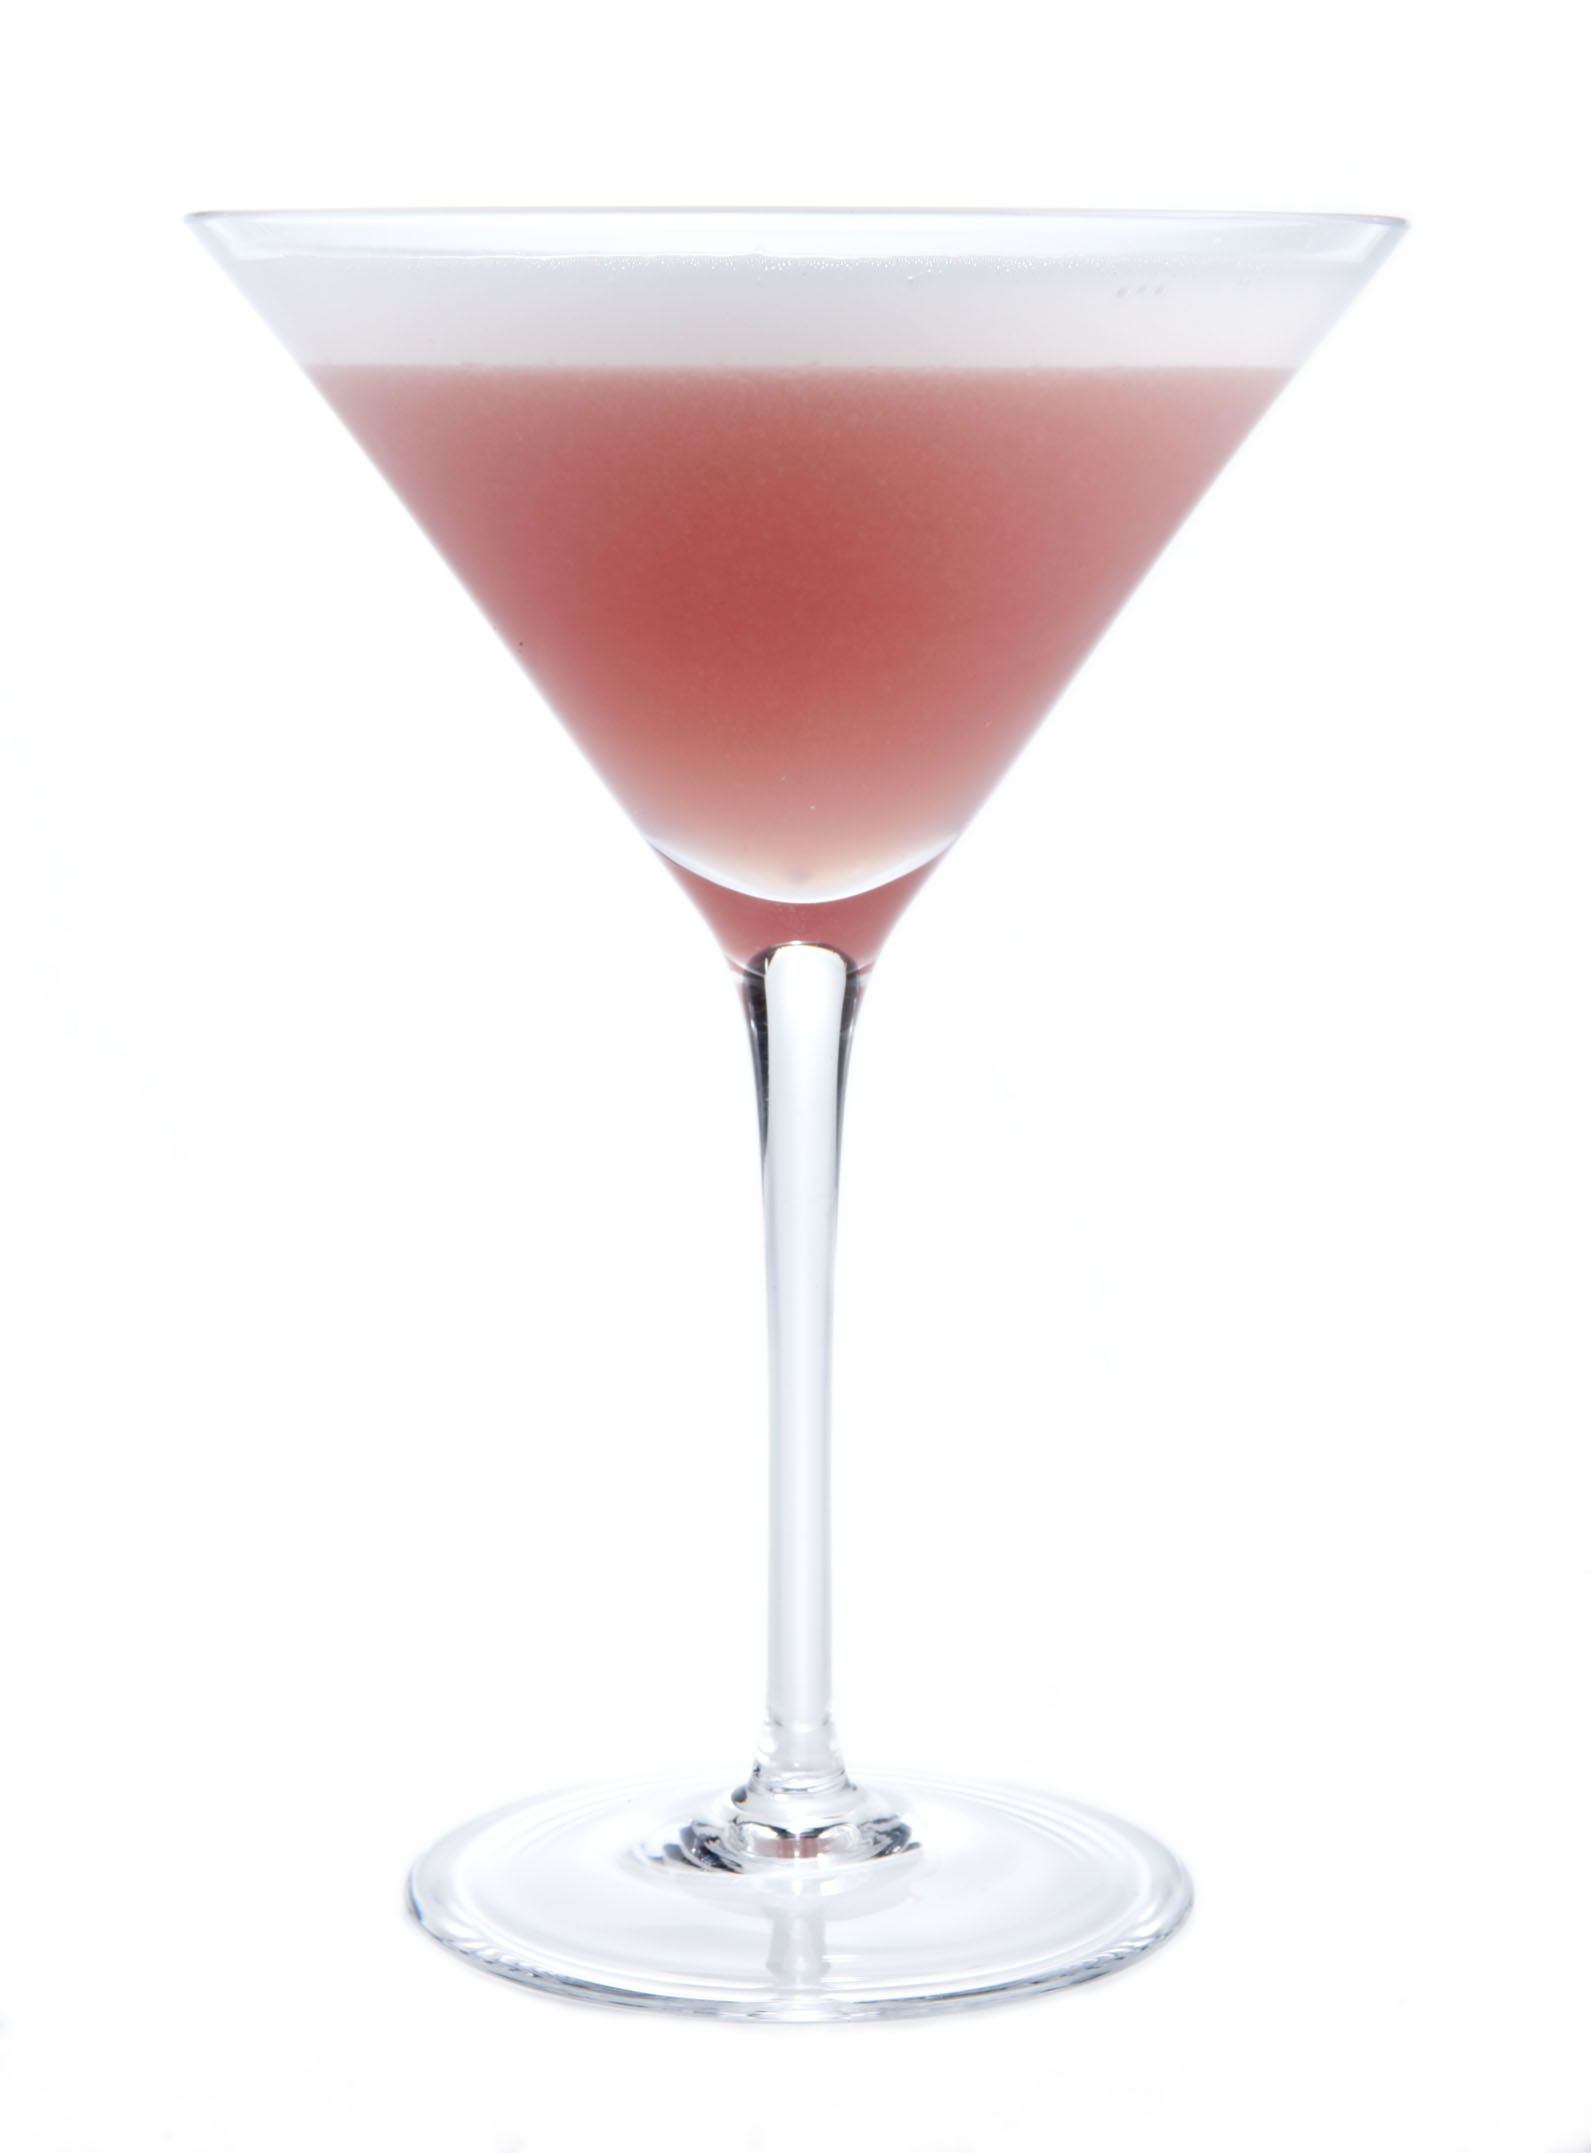 Clover Club - Drink Recipe – How to Make the Perfect Clover Club